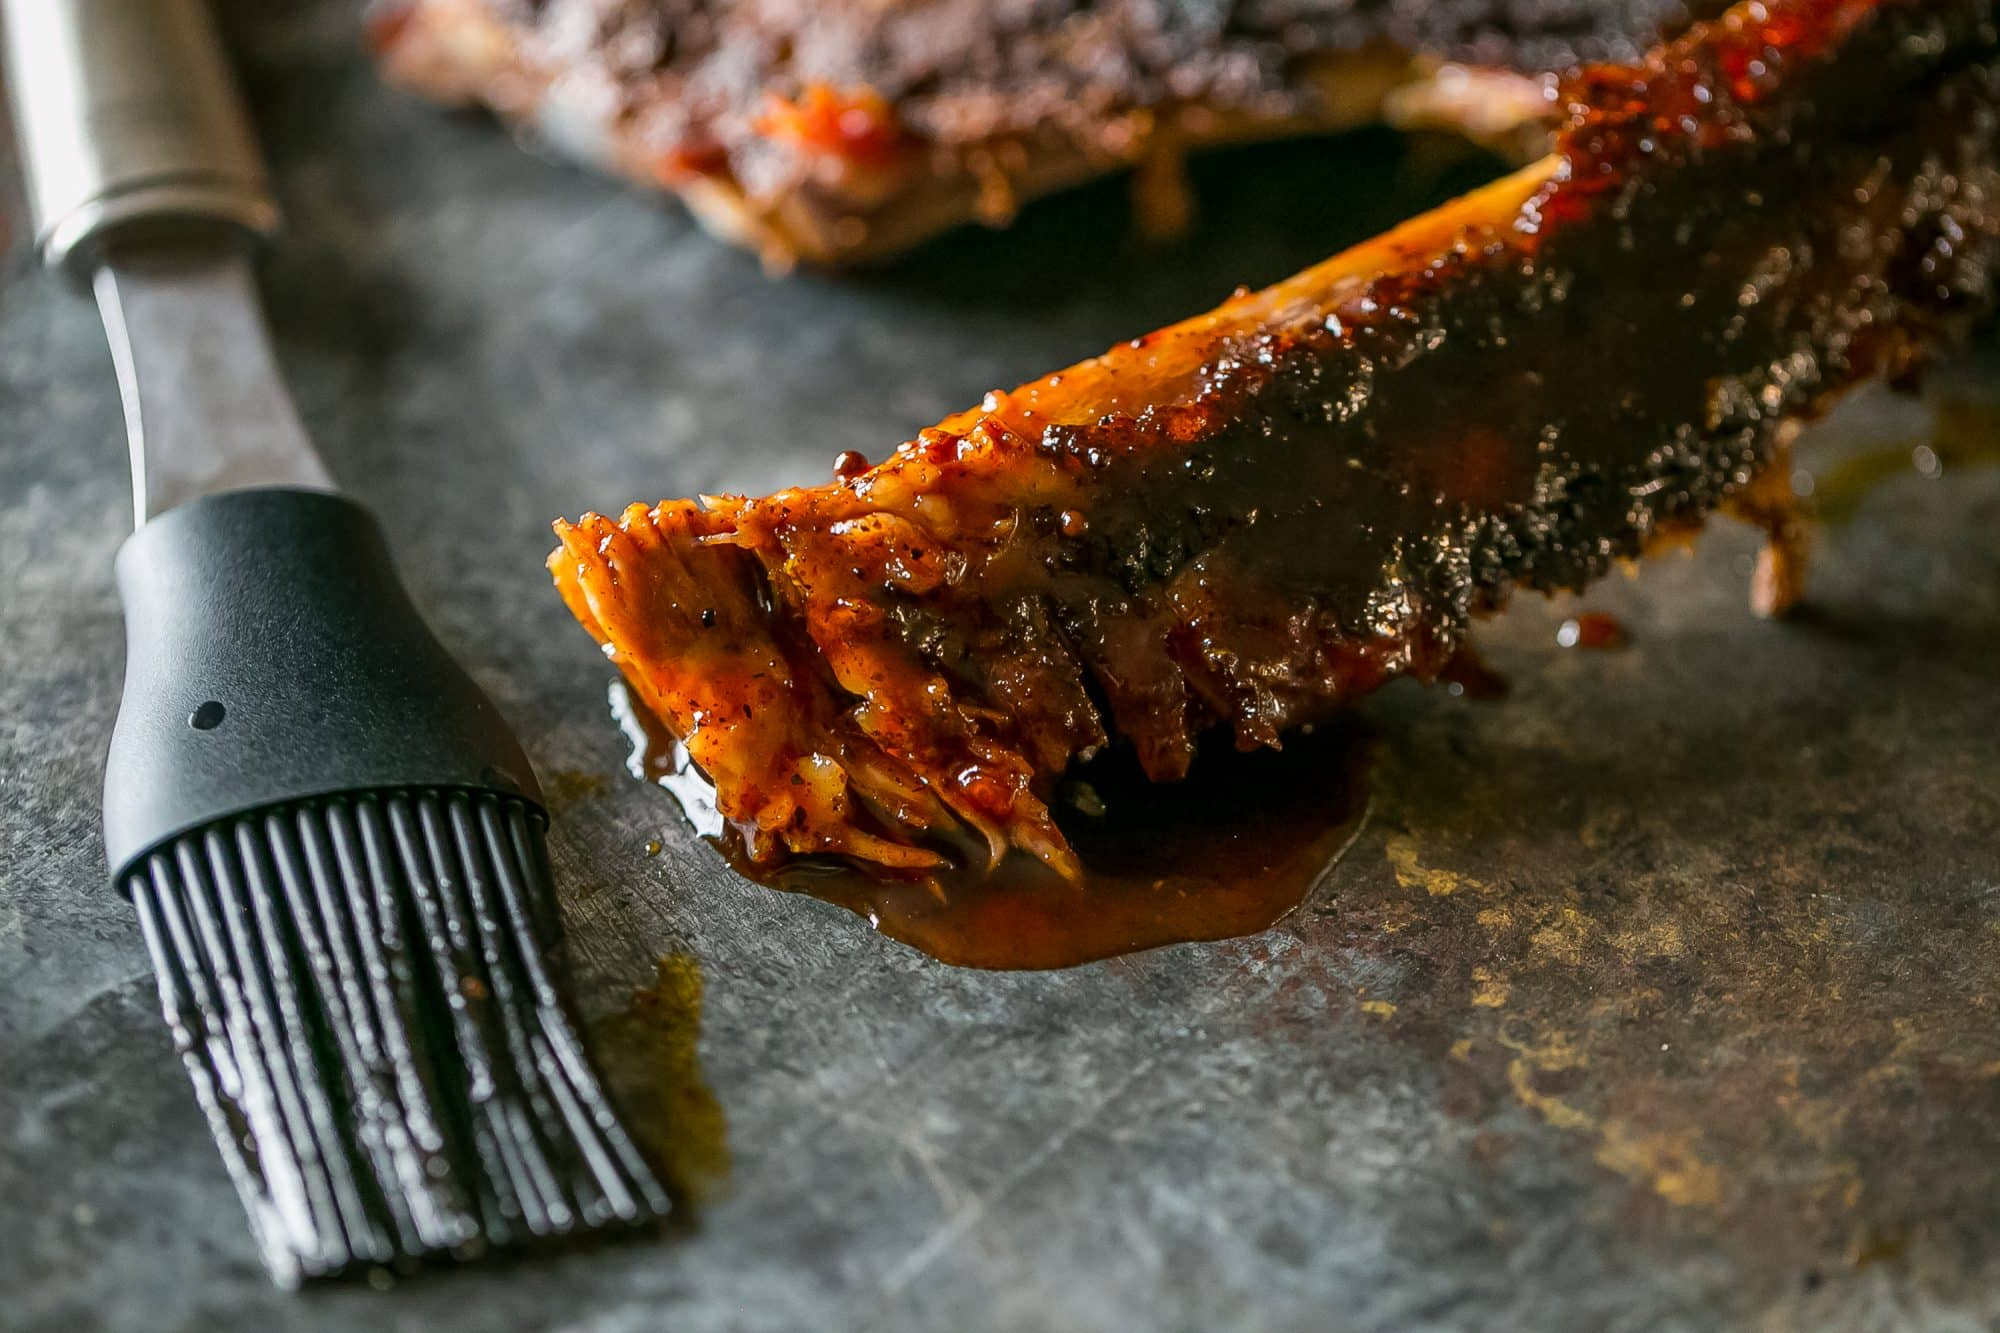 These smoked pork ribs are so delicious - this is the best recipe!